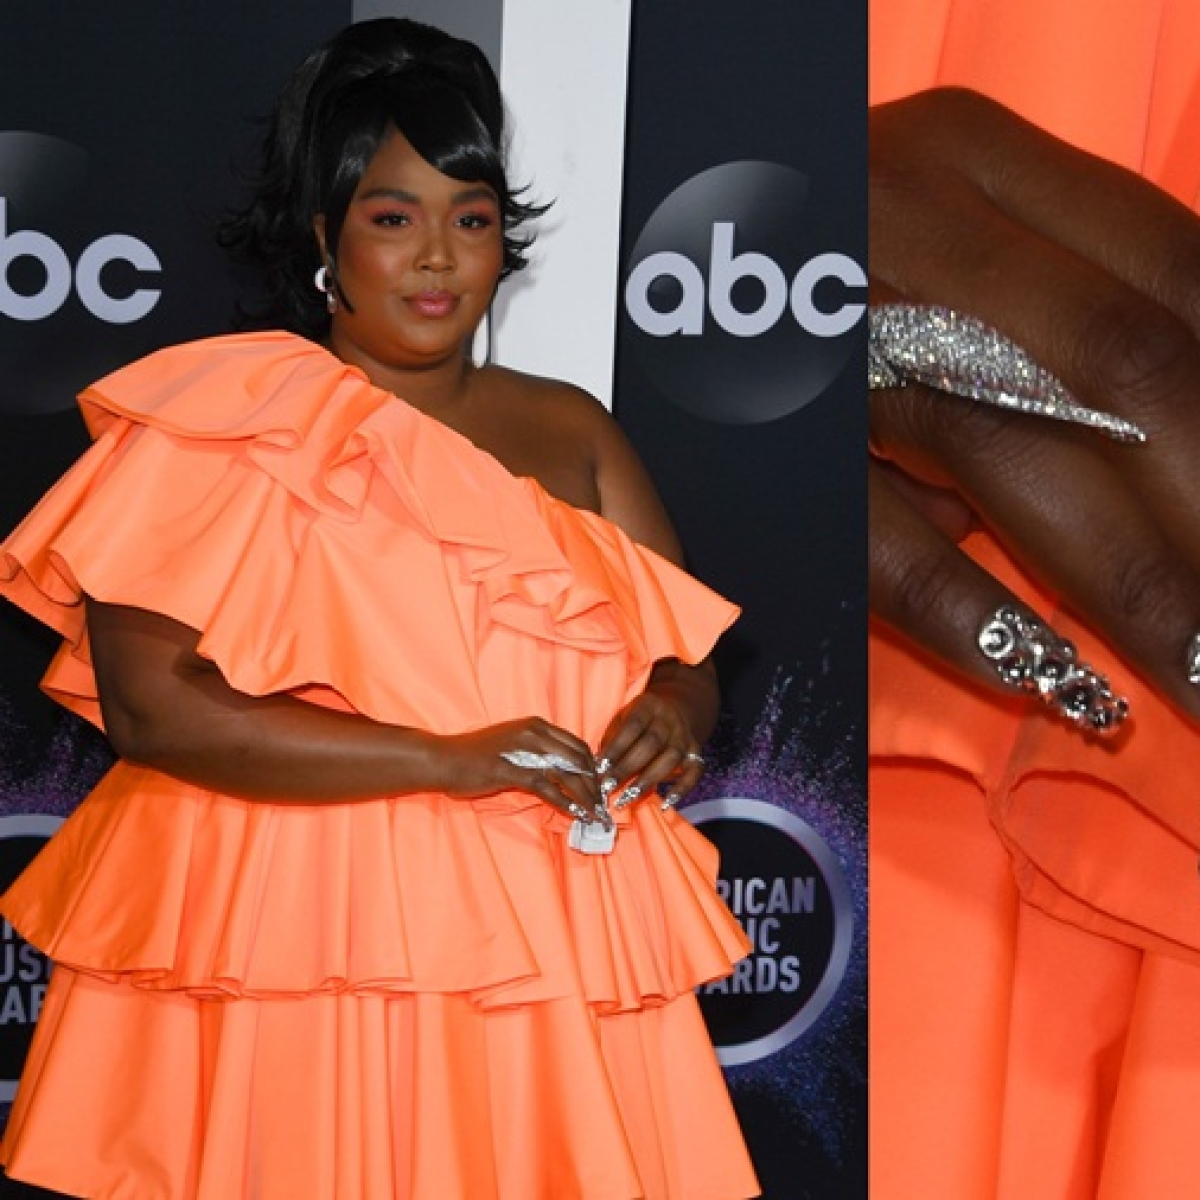 'Enough for my f***s to give': Lizzo's tiny purse at the AMAs 2019 came with a powerful message!